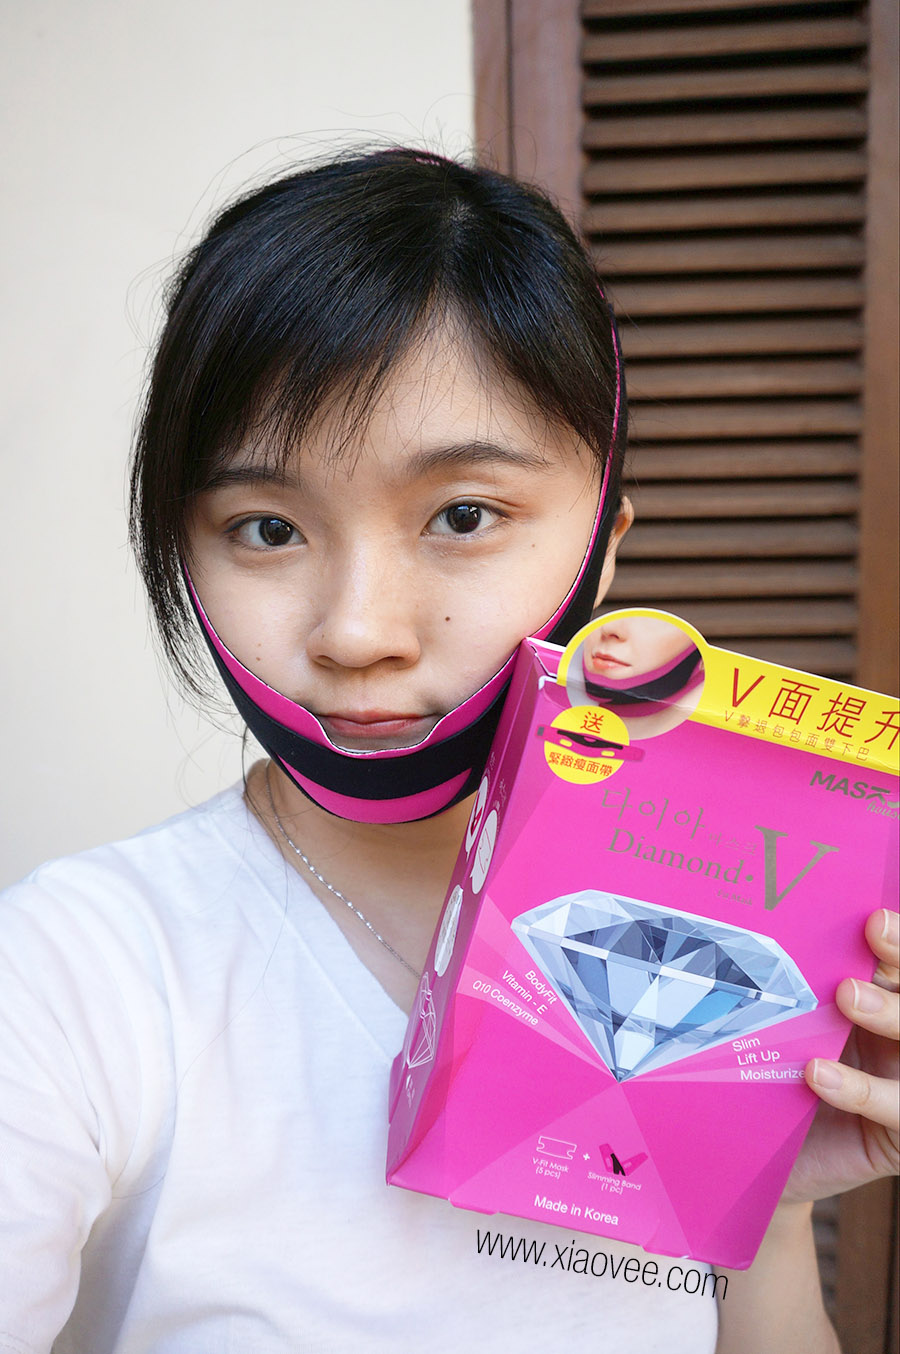 Mask House Diamond V Fit Mask Review - How to get V-chin without surgery